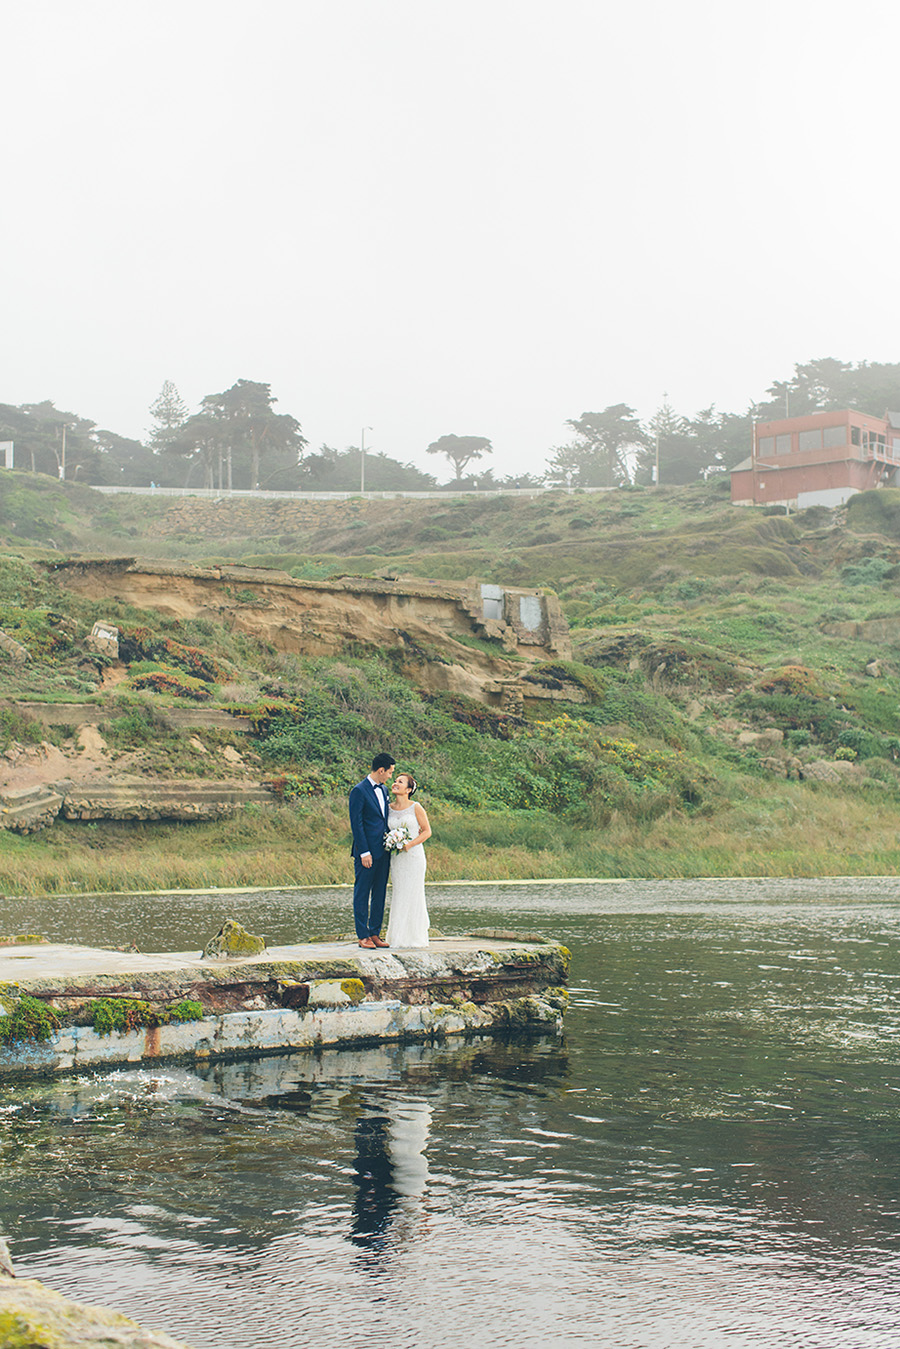 SAN-FRANCISCO-WEDDING-PHOTOGRAPHER-CALIFORNIA-SAN-JOSE-PHOTOGRAPHY-ELOPEMENT-ENGAGEMENT-PHOTOGRAPHY-INTIMATE-WEDDING-CHRISSY-FIELDS-SUTRO-BATHS-WEDDING-ENGAGEMENT-PHOTOGRAPHY-039.jpg